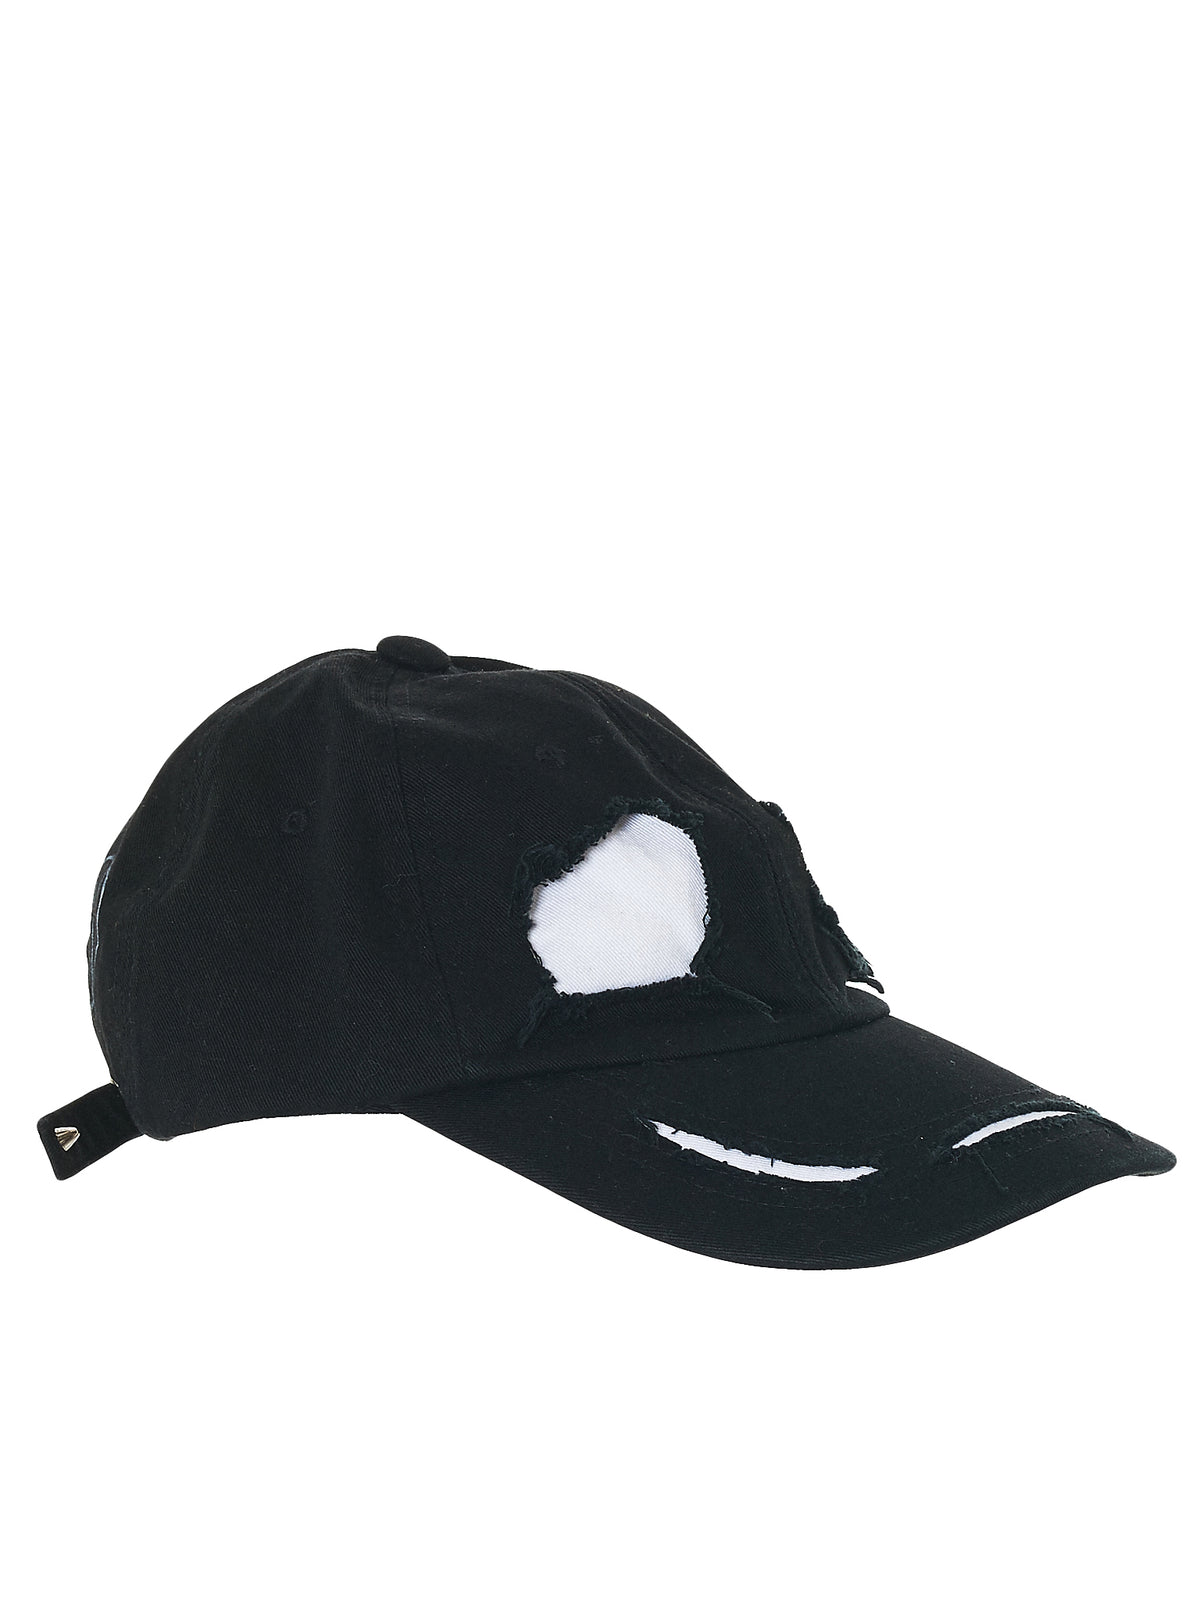 99%IS 'Ghost' Baseball Cap - Hlorenzo Front